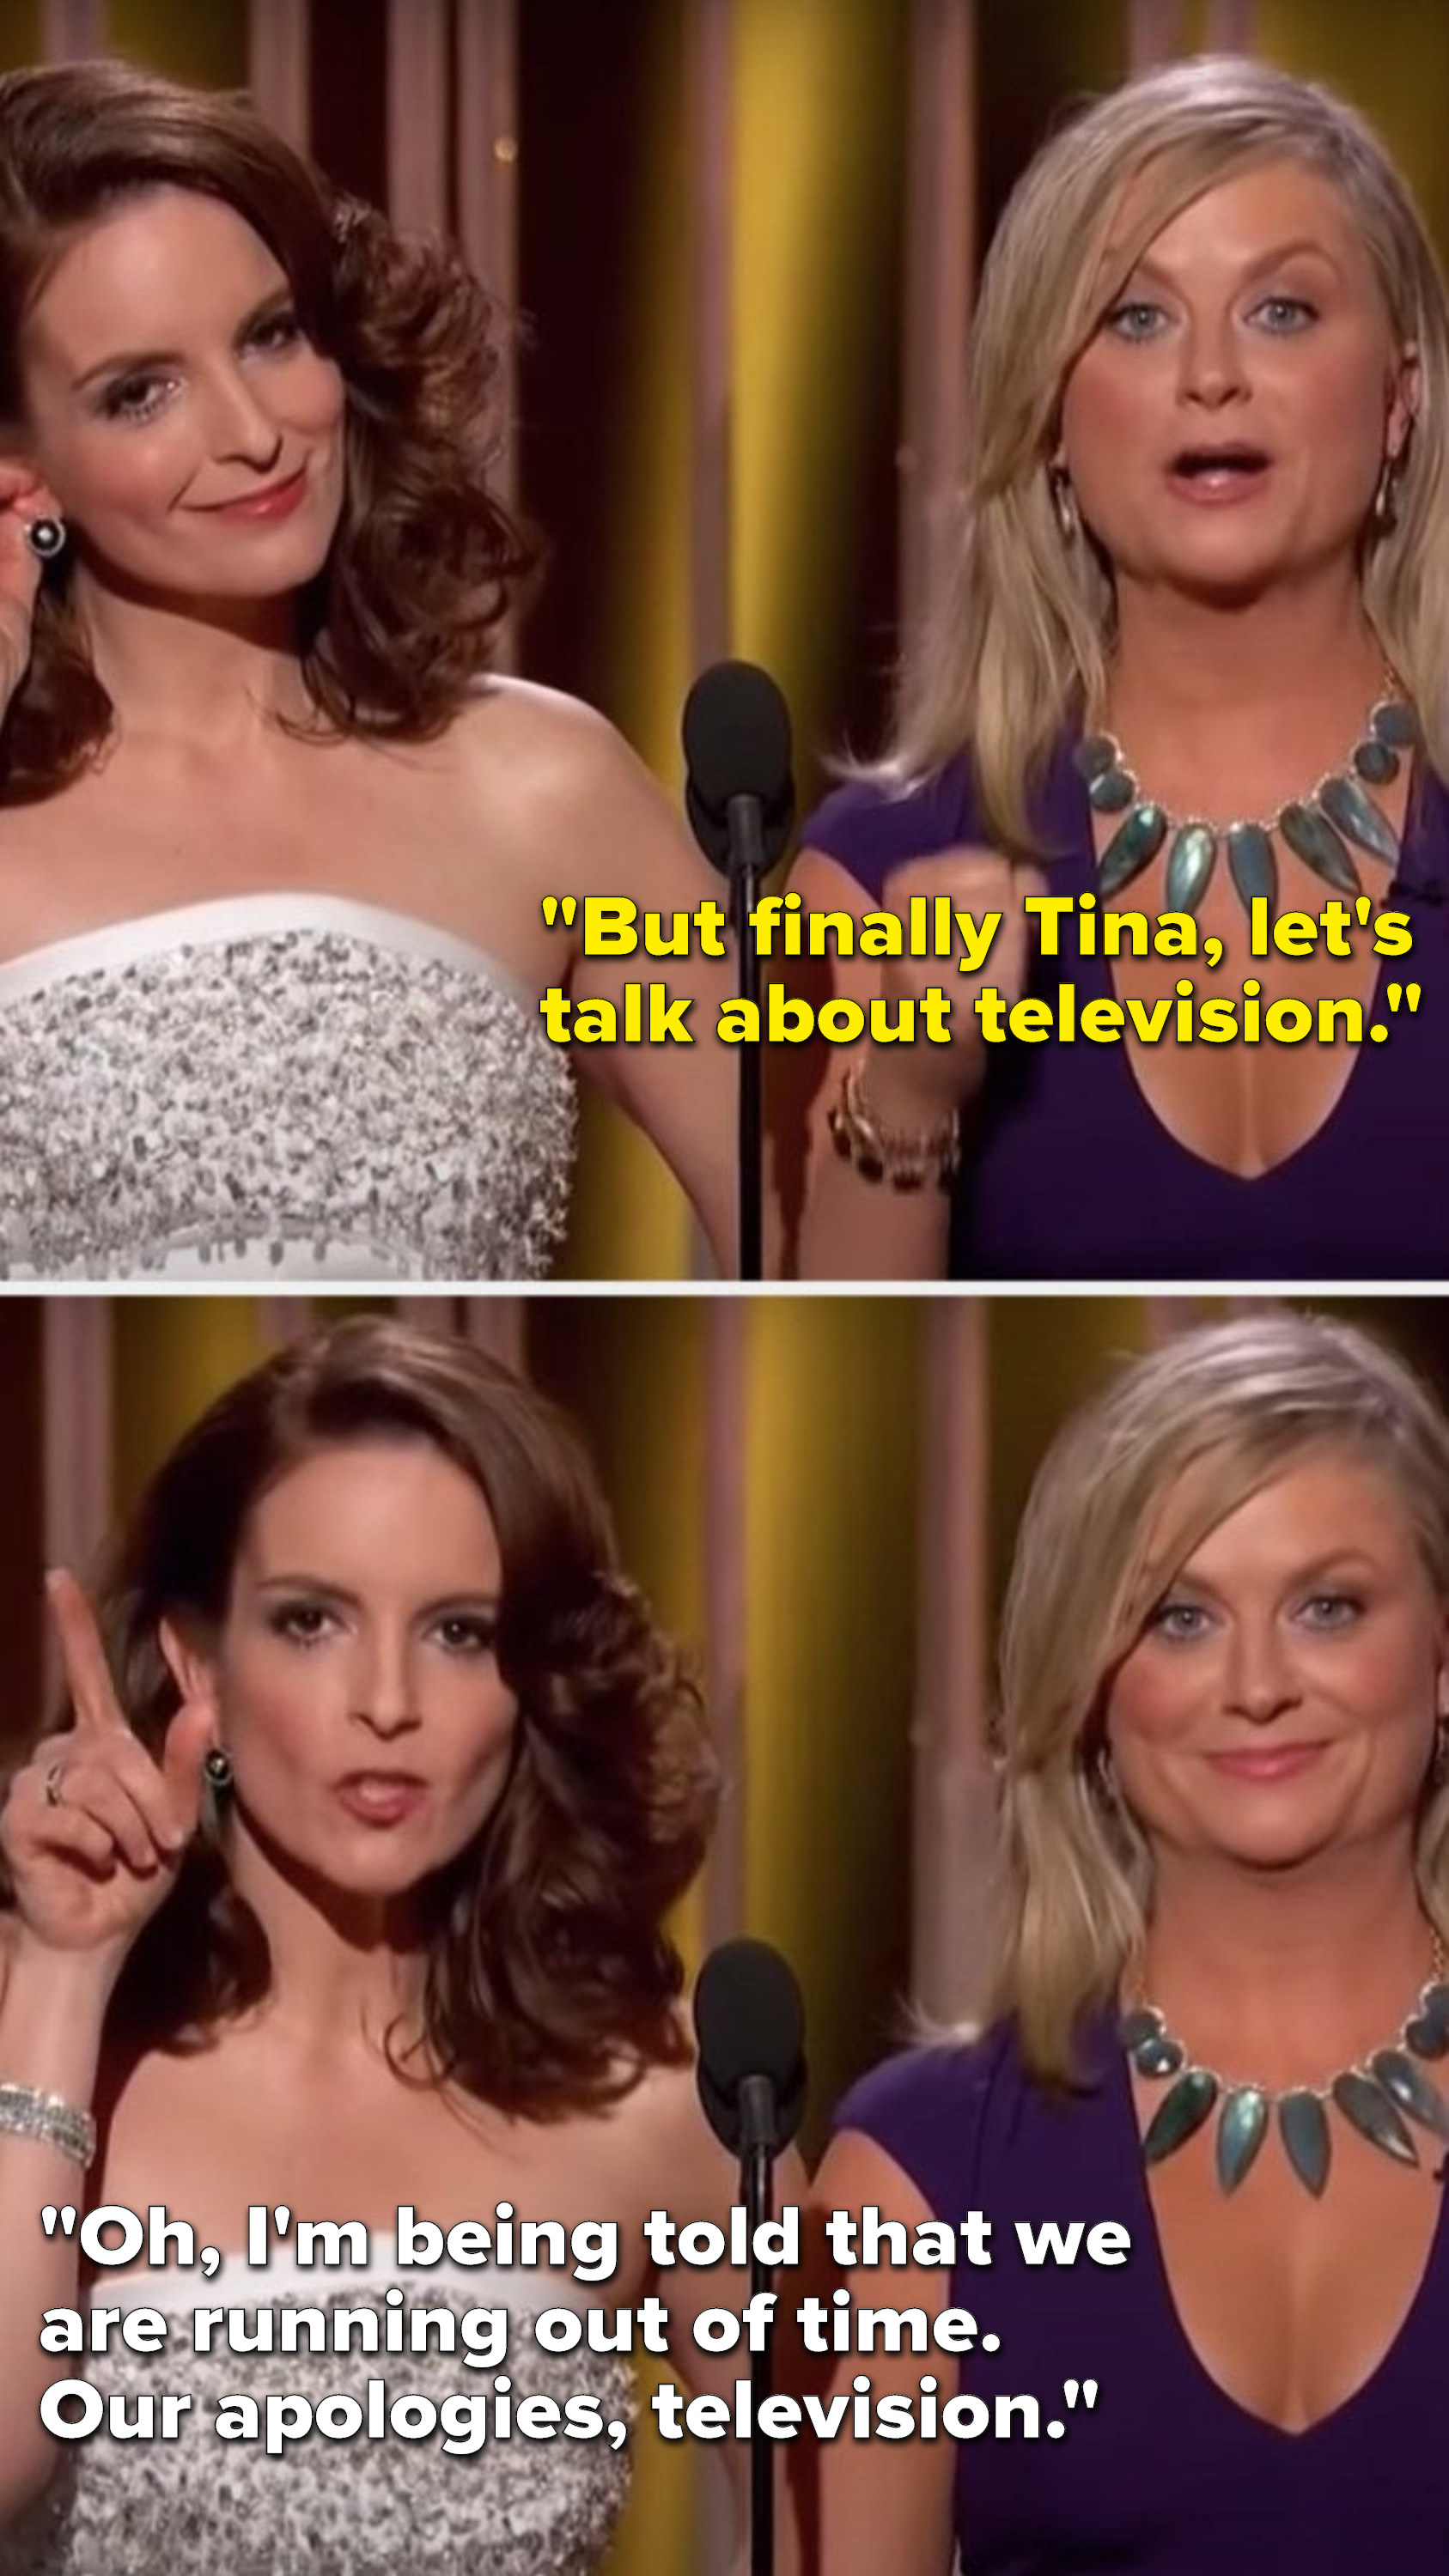 """Poehler says, """"But finally Tina, let's talk about television,"""" and Fey says, """"Oh, I'm being told that we are running out of time, our apologies, television"""""""